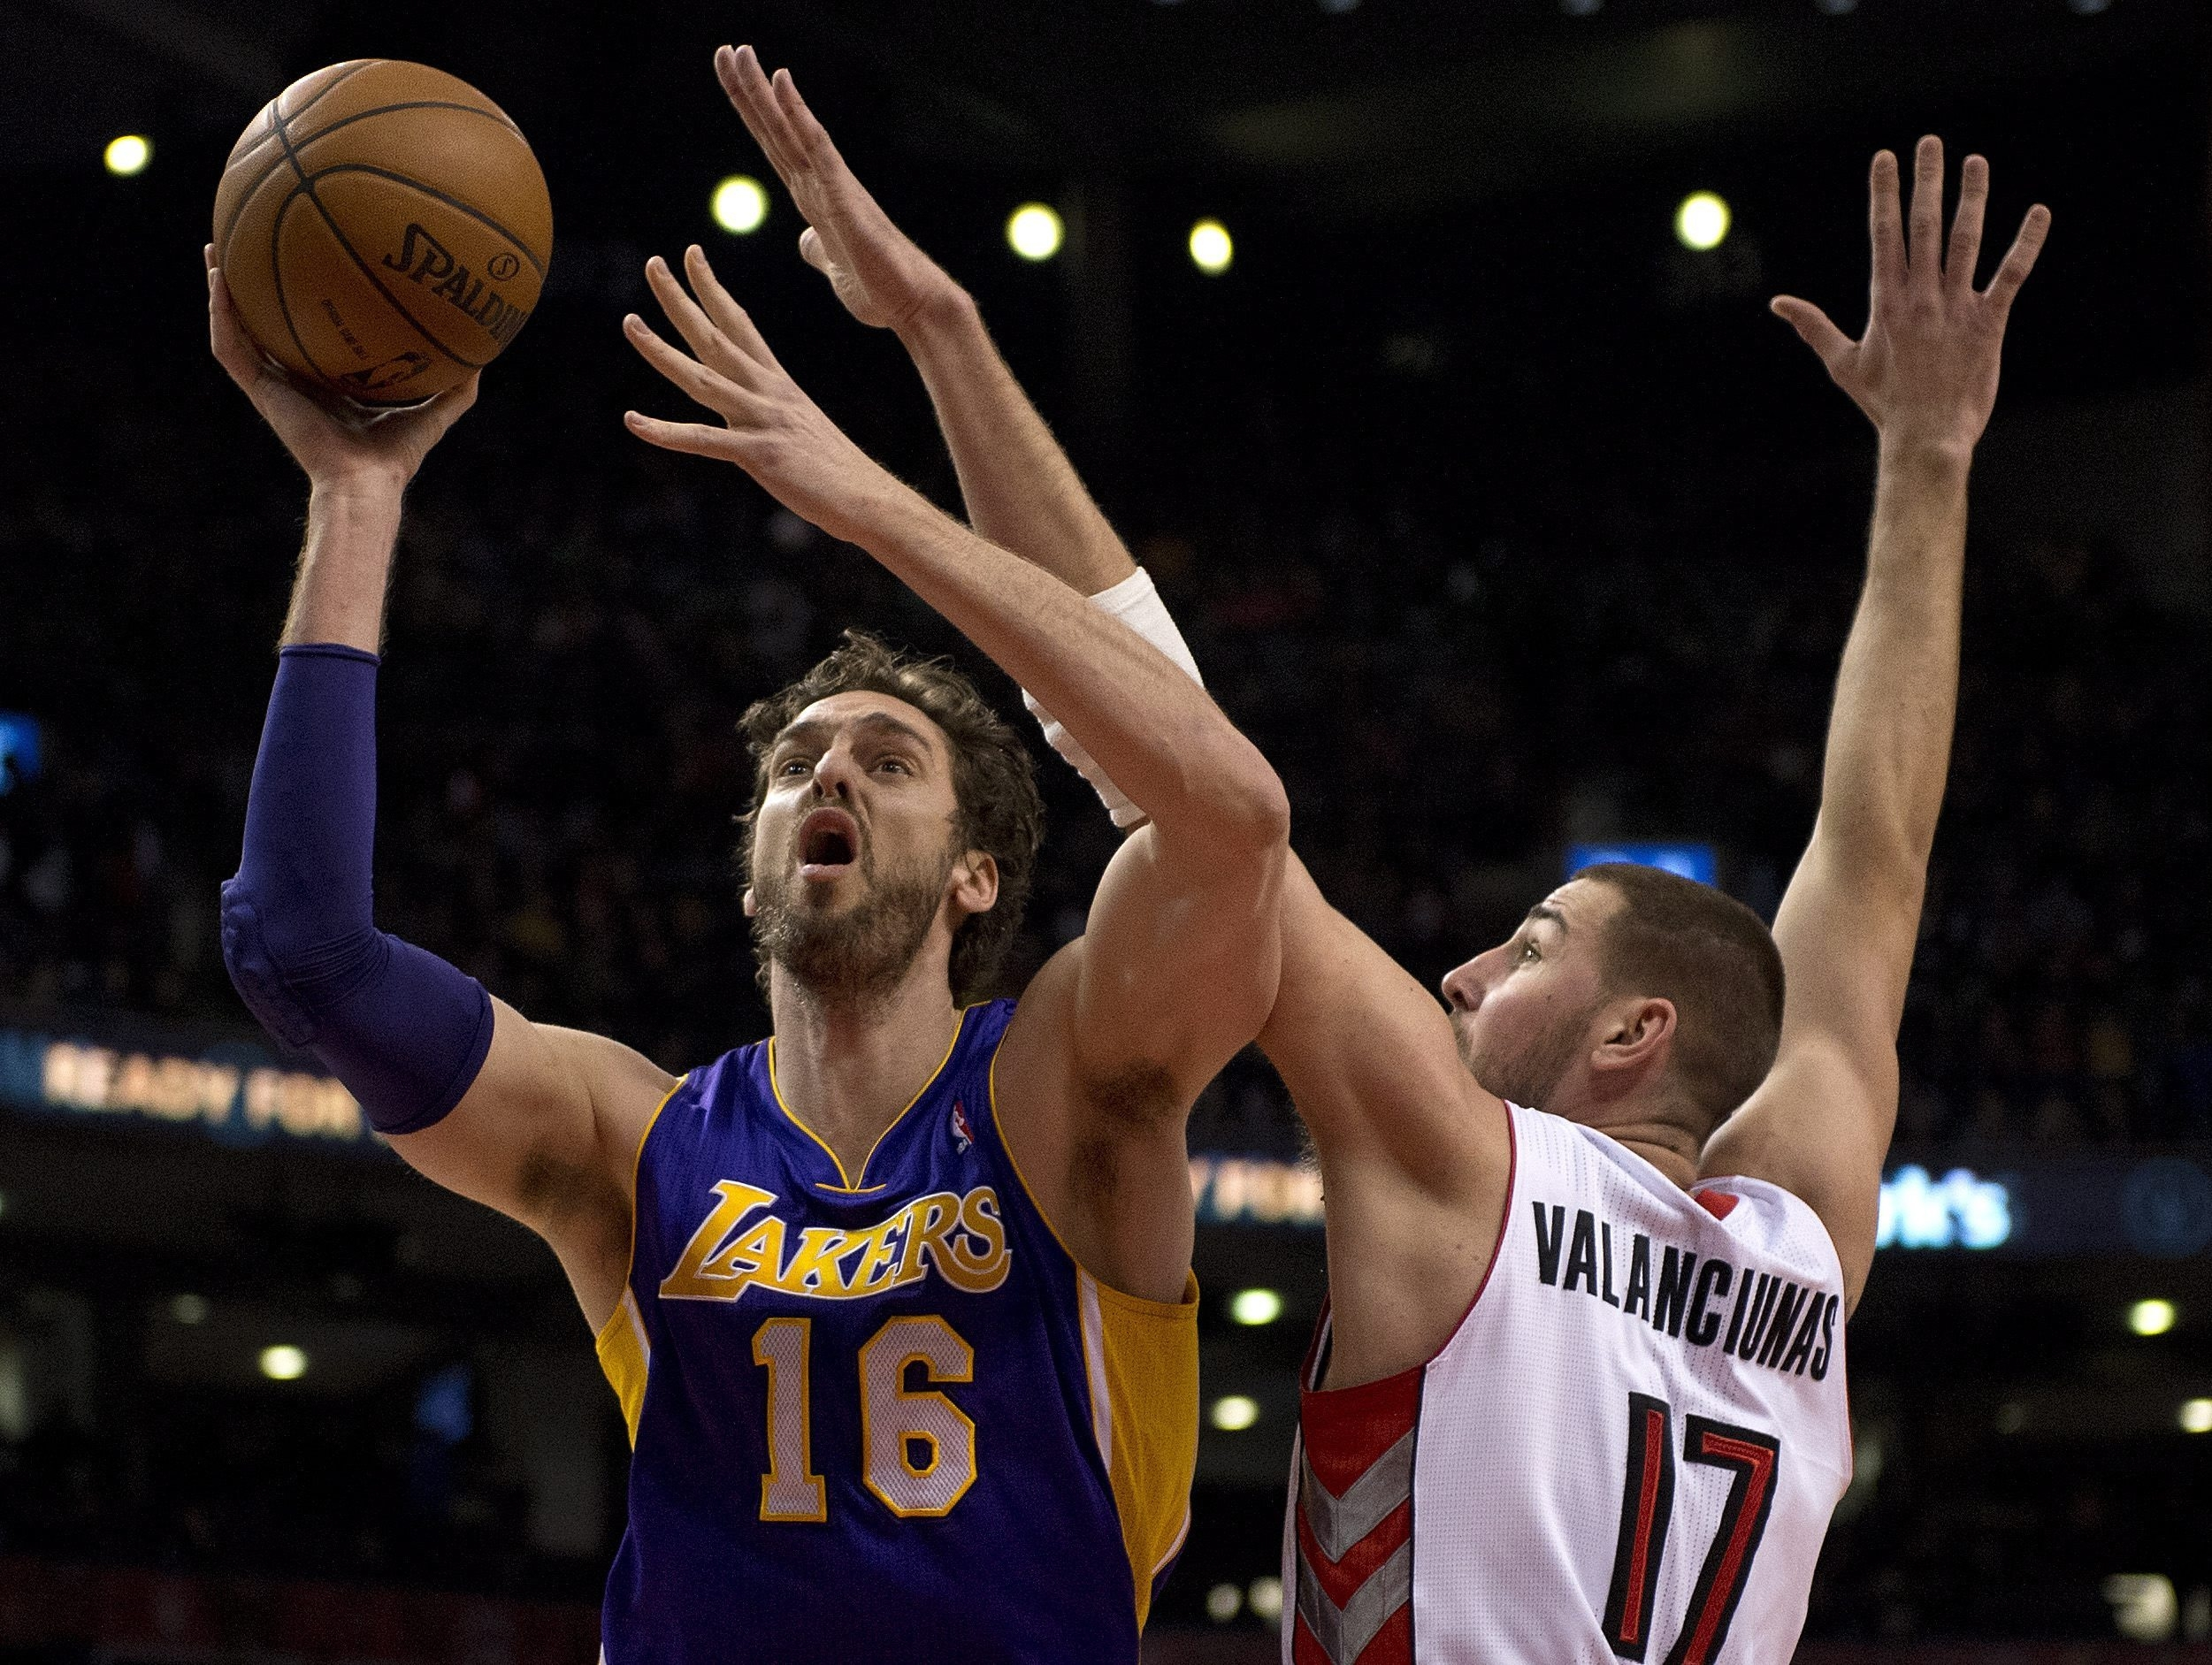 Lakers center Pau Gasol drives to the hoop past Toronto Raptors center Jonas Valanciunas during the first half in Air Canada Centre on Sunday.   Associated Press